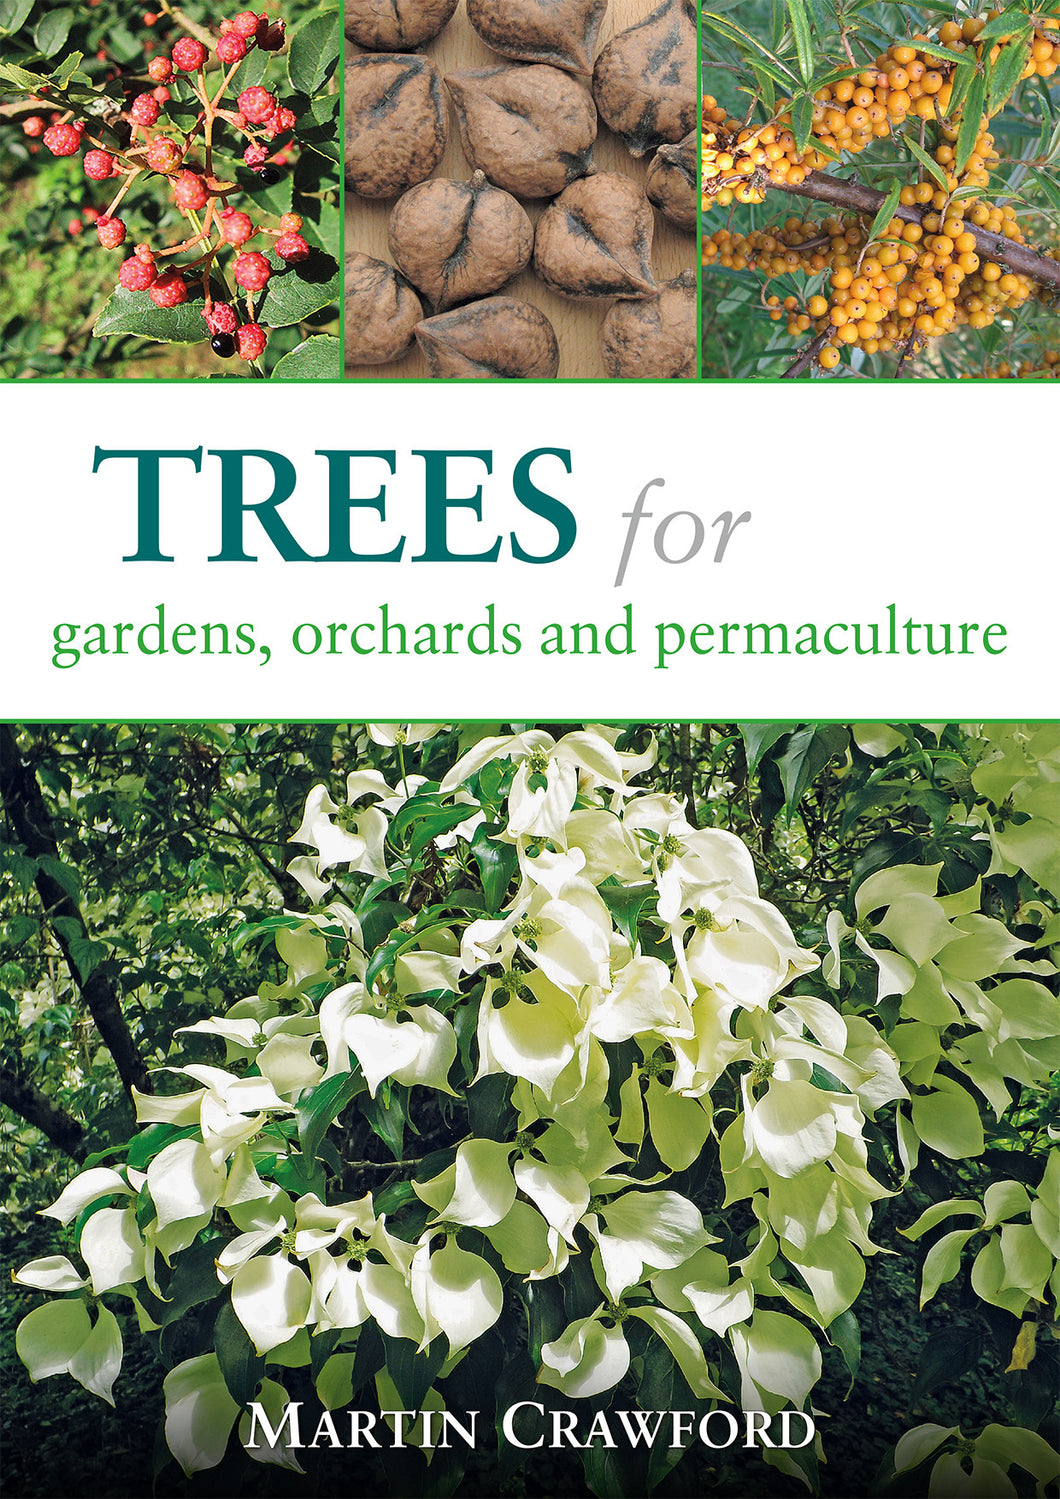 Trees for Gardens, Orchards, and Permaculture by Martin Crawford